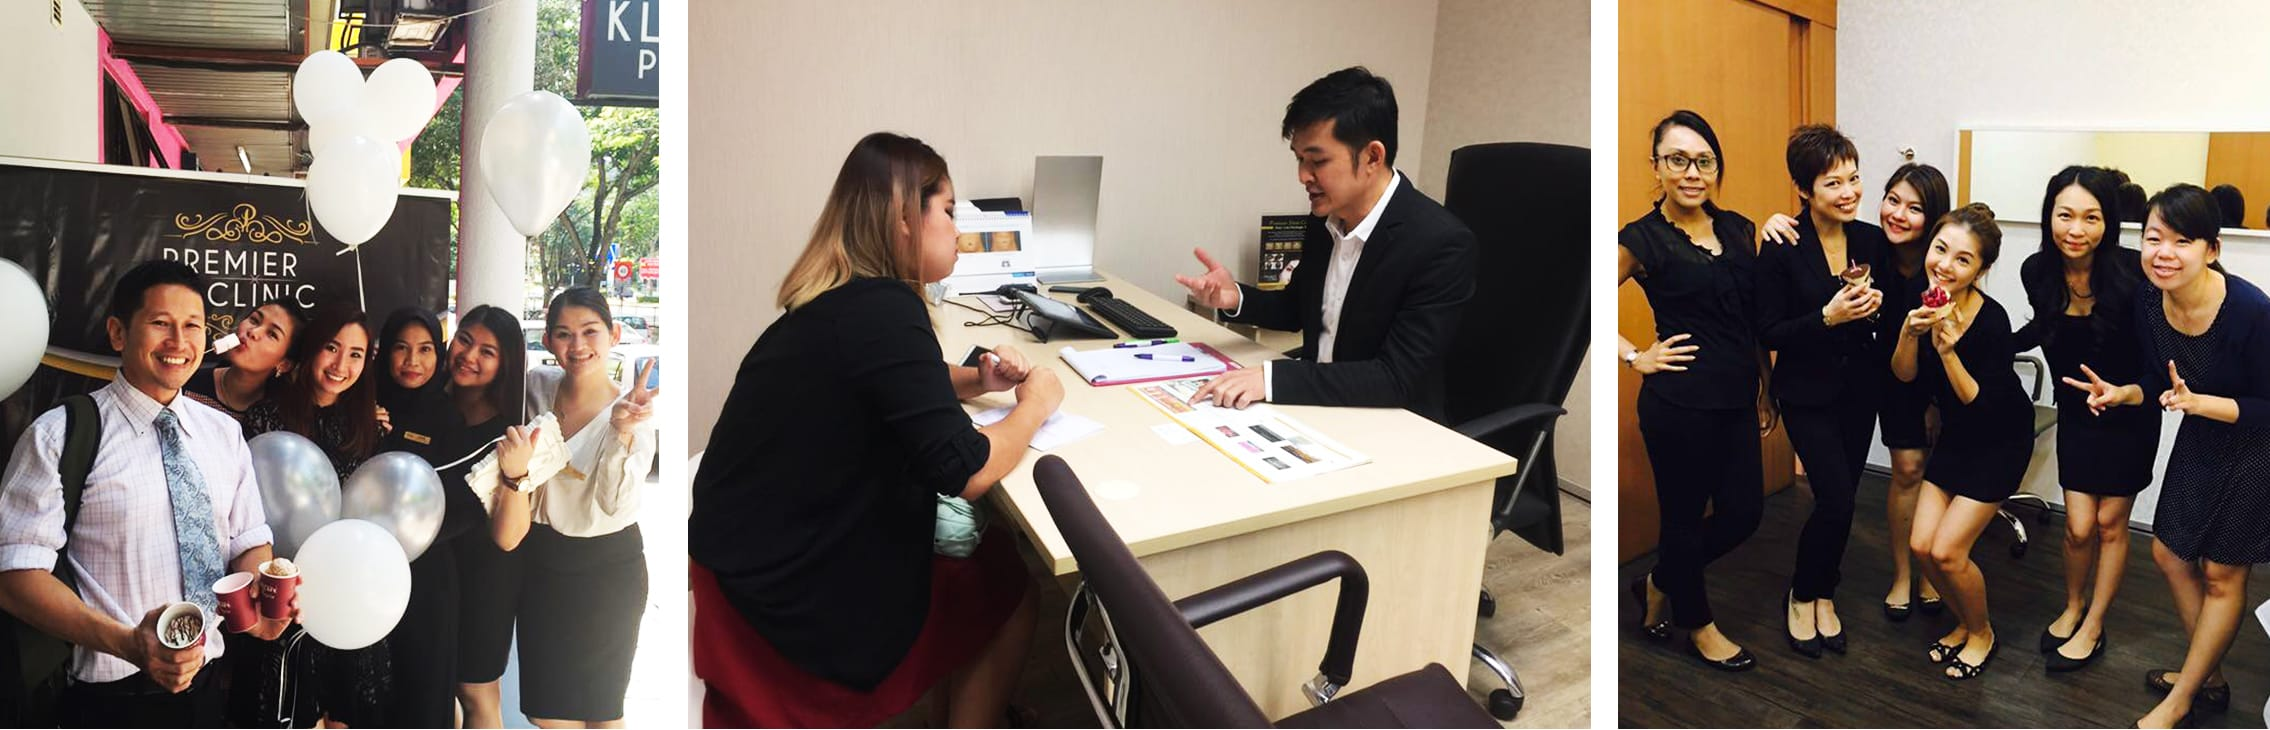 Career at Premier Clinic